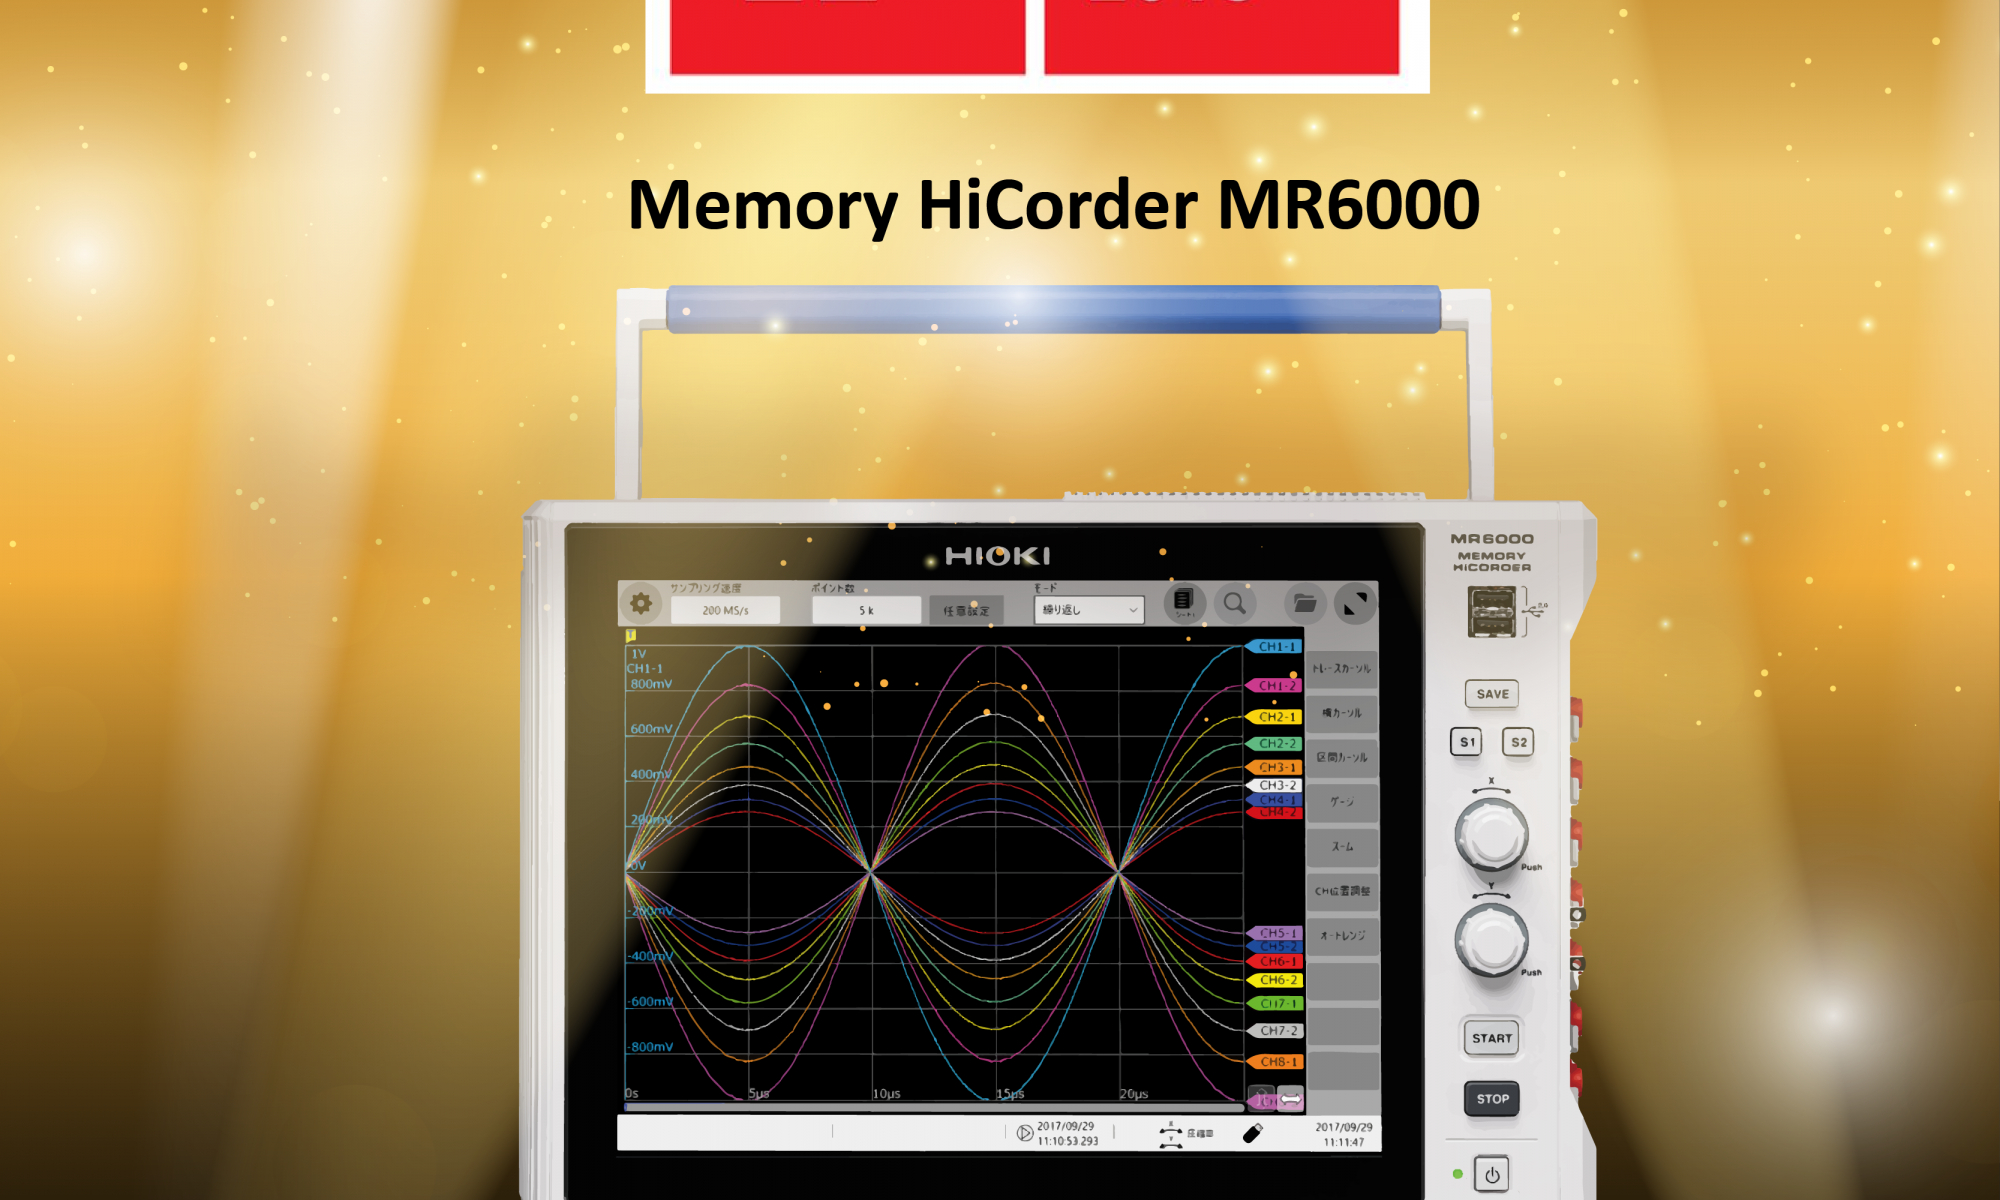 News Page 3 Hioki Clamp Meter Ac 3280 10f 1000a Flexible Current 14 March 2018 Memory Hicorder Mr6000 Receives If Design Award